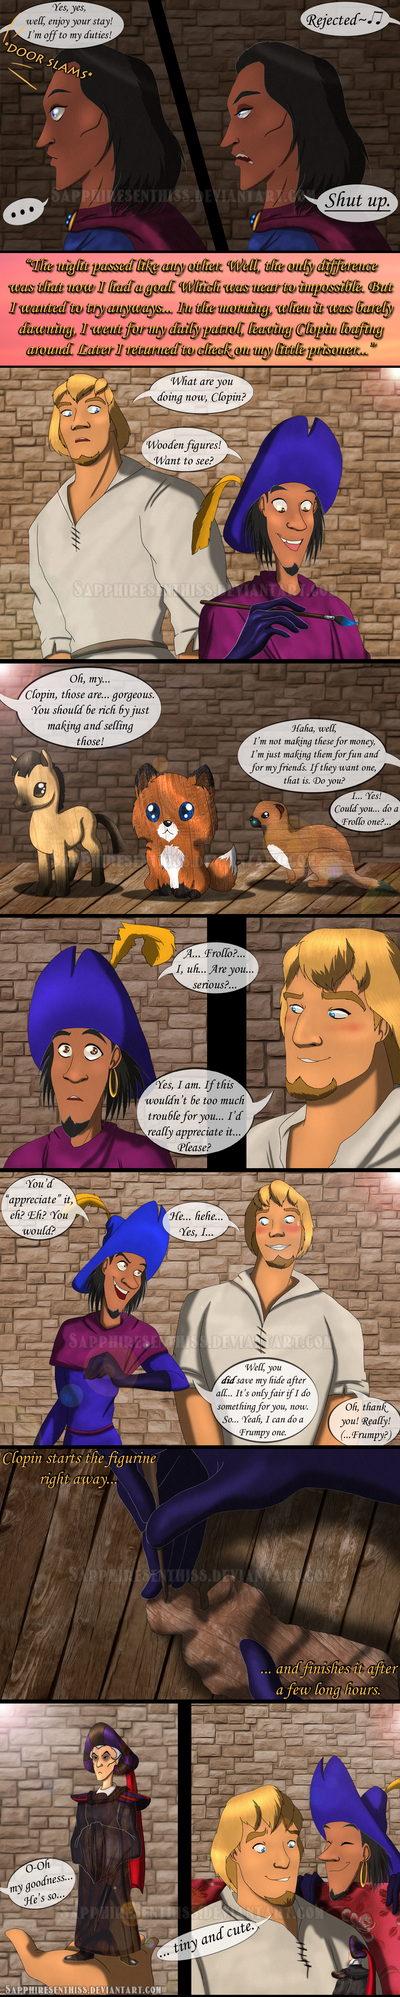 Never Judge A Gypsy By His Skin - PAGE 18 by Sapphiresenthiss